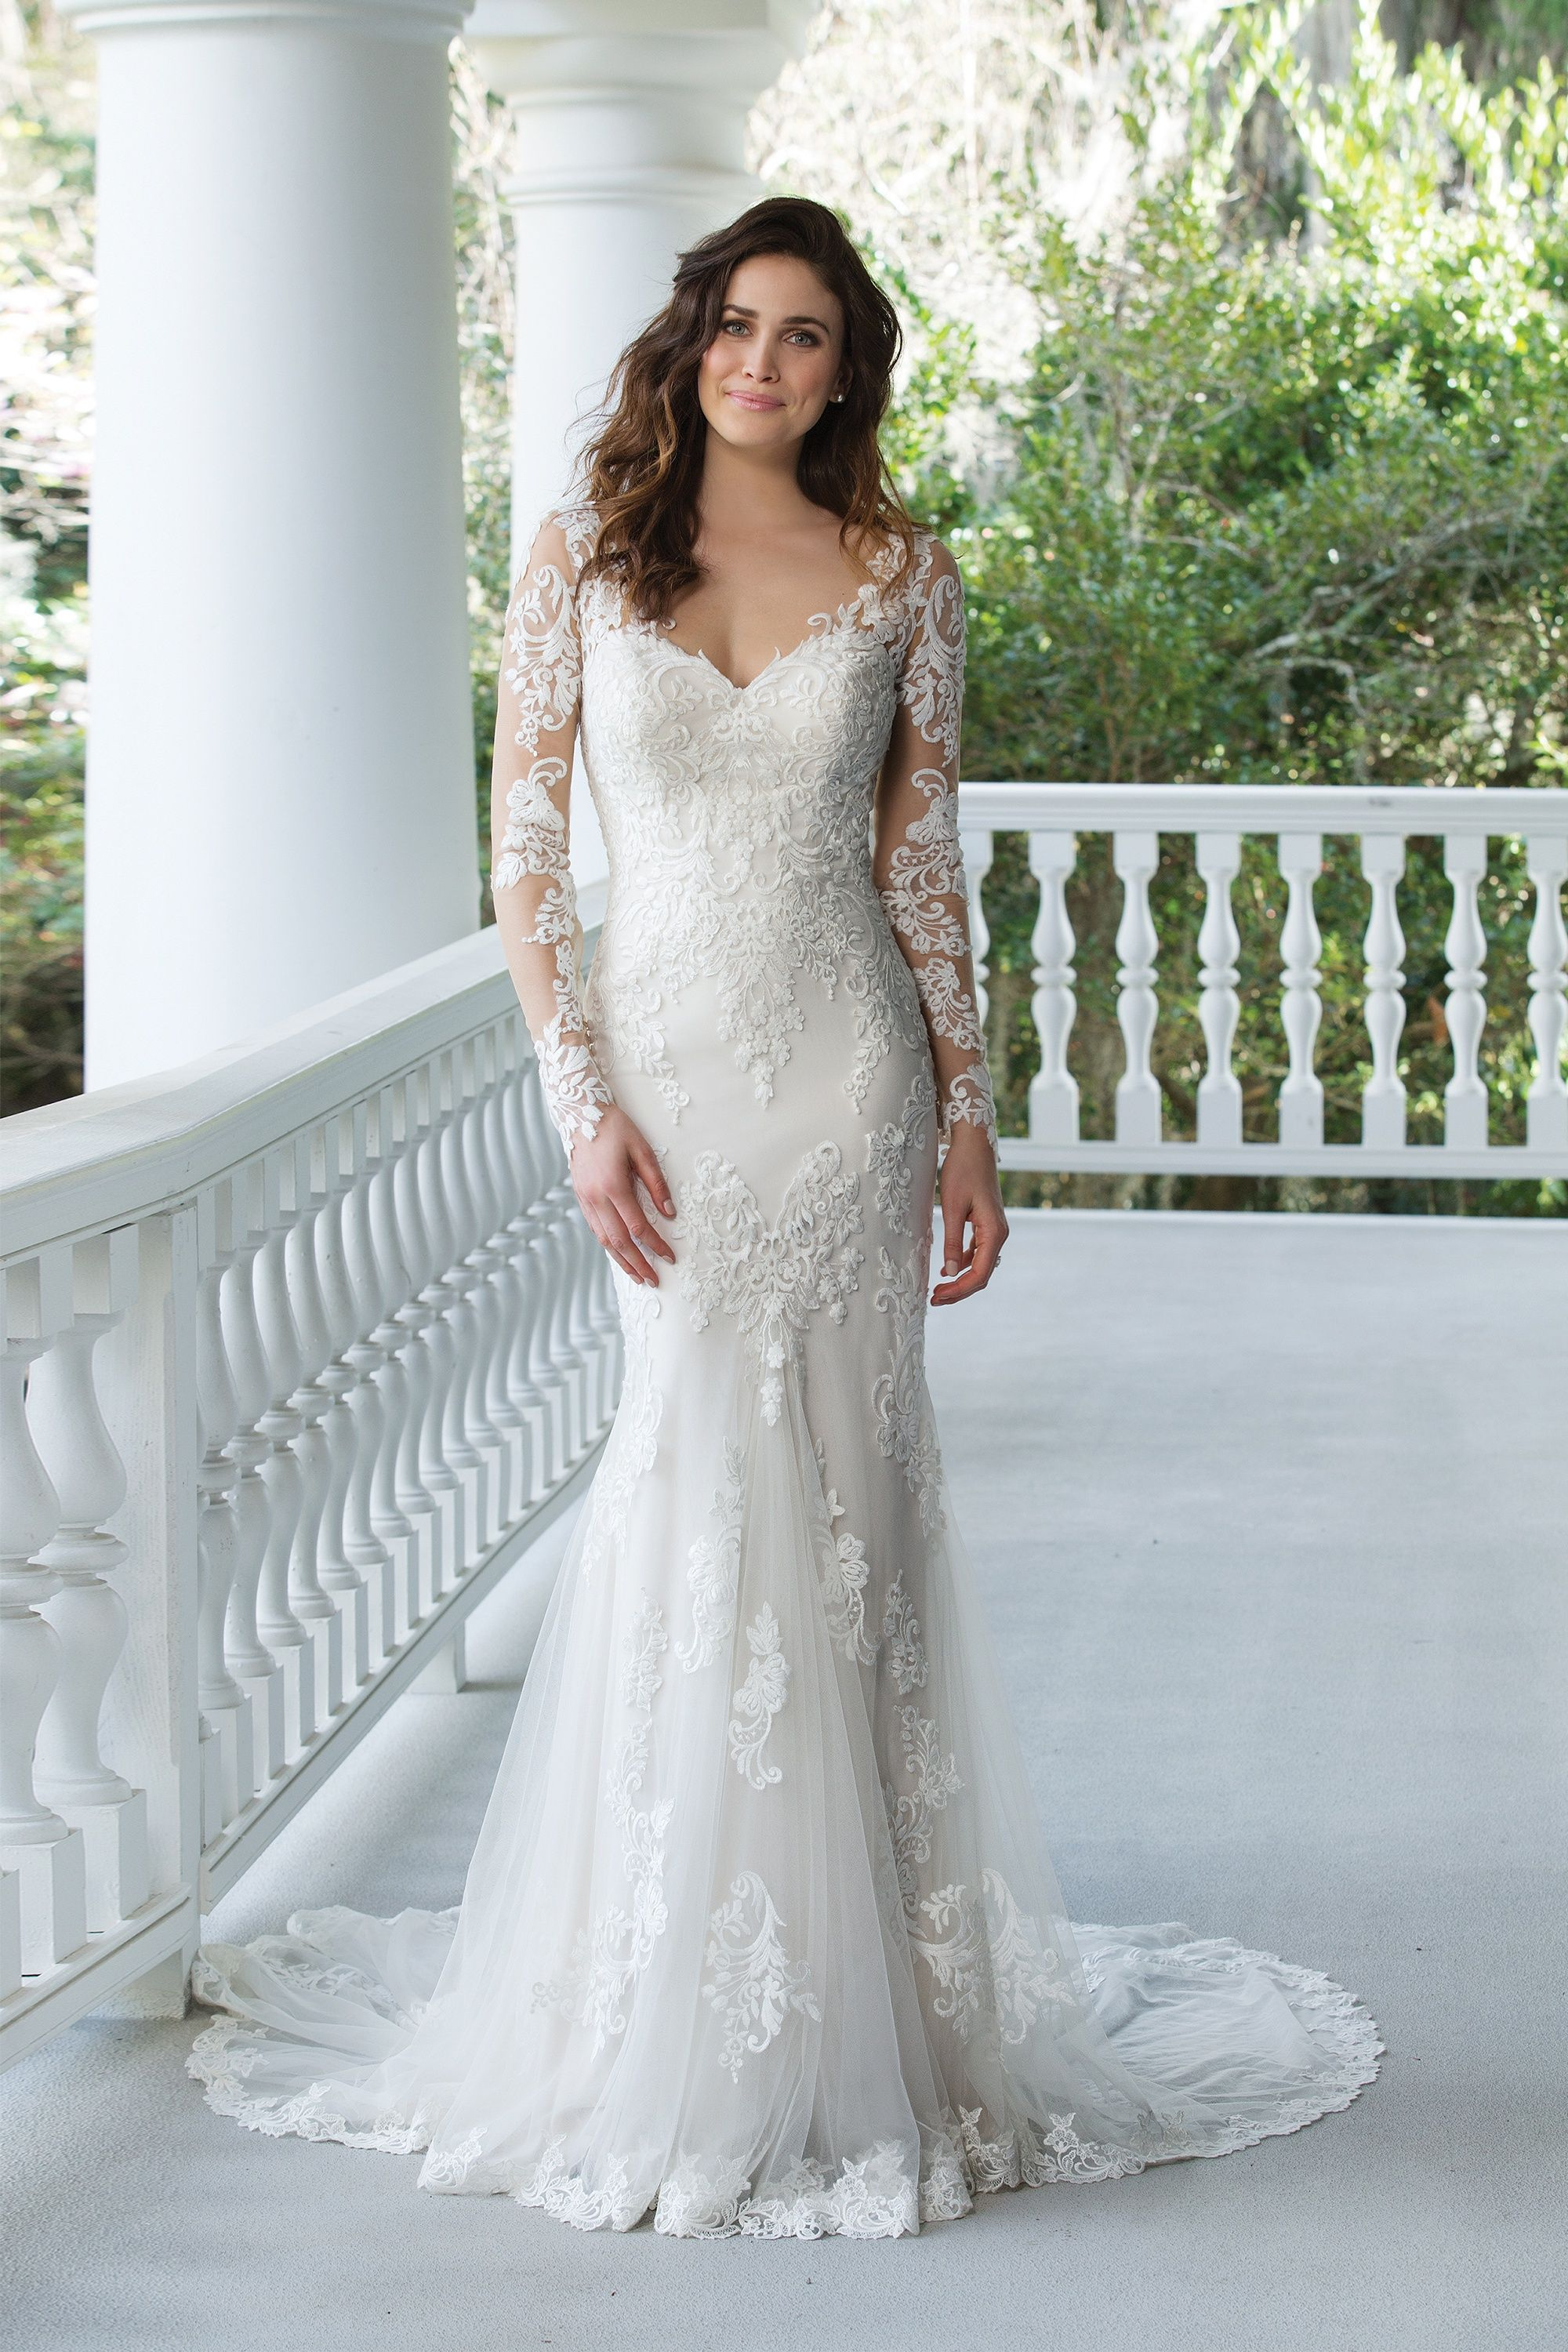 Fit and Flare Gown with Lace Illusion Sleeves and Back | The White ...